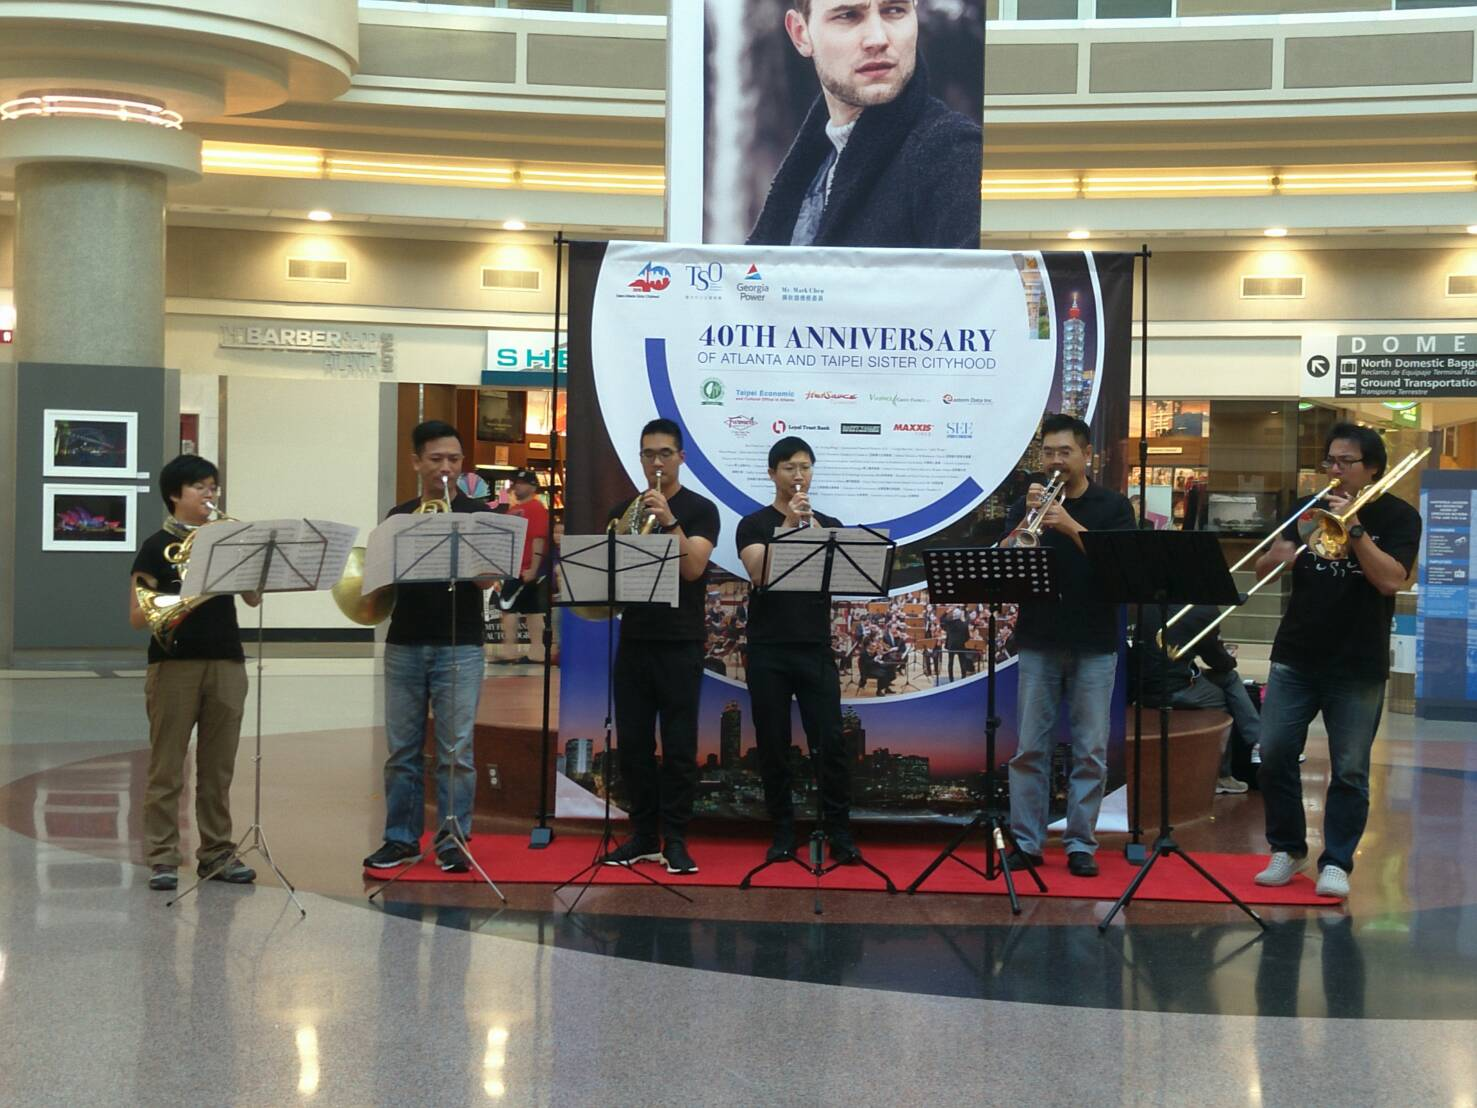 The sextet actually did a flash mob show at the airport.